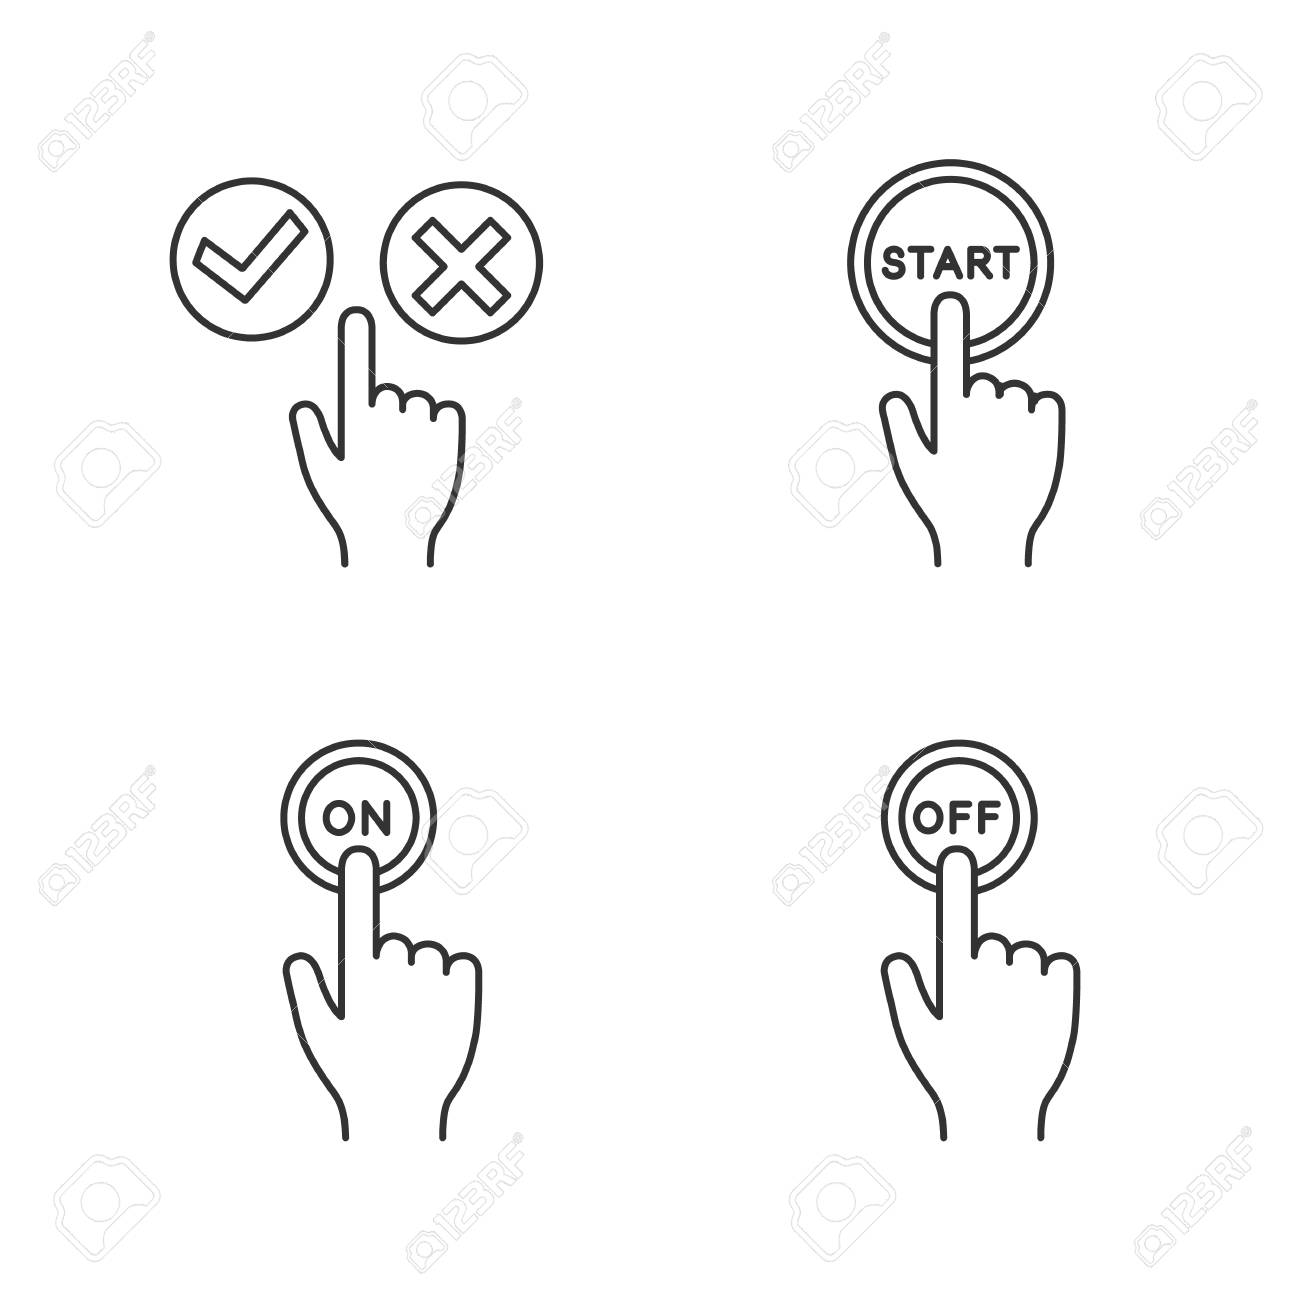 App Buttons Linear Icons Set Click Accept And Decline Start